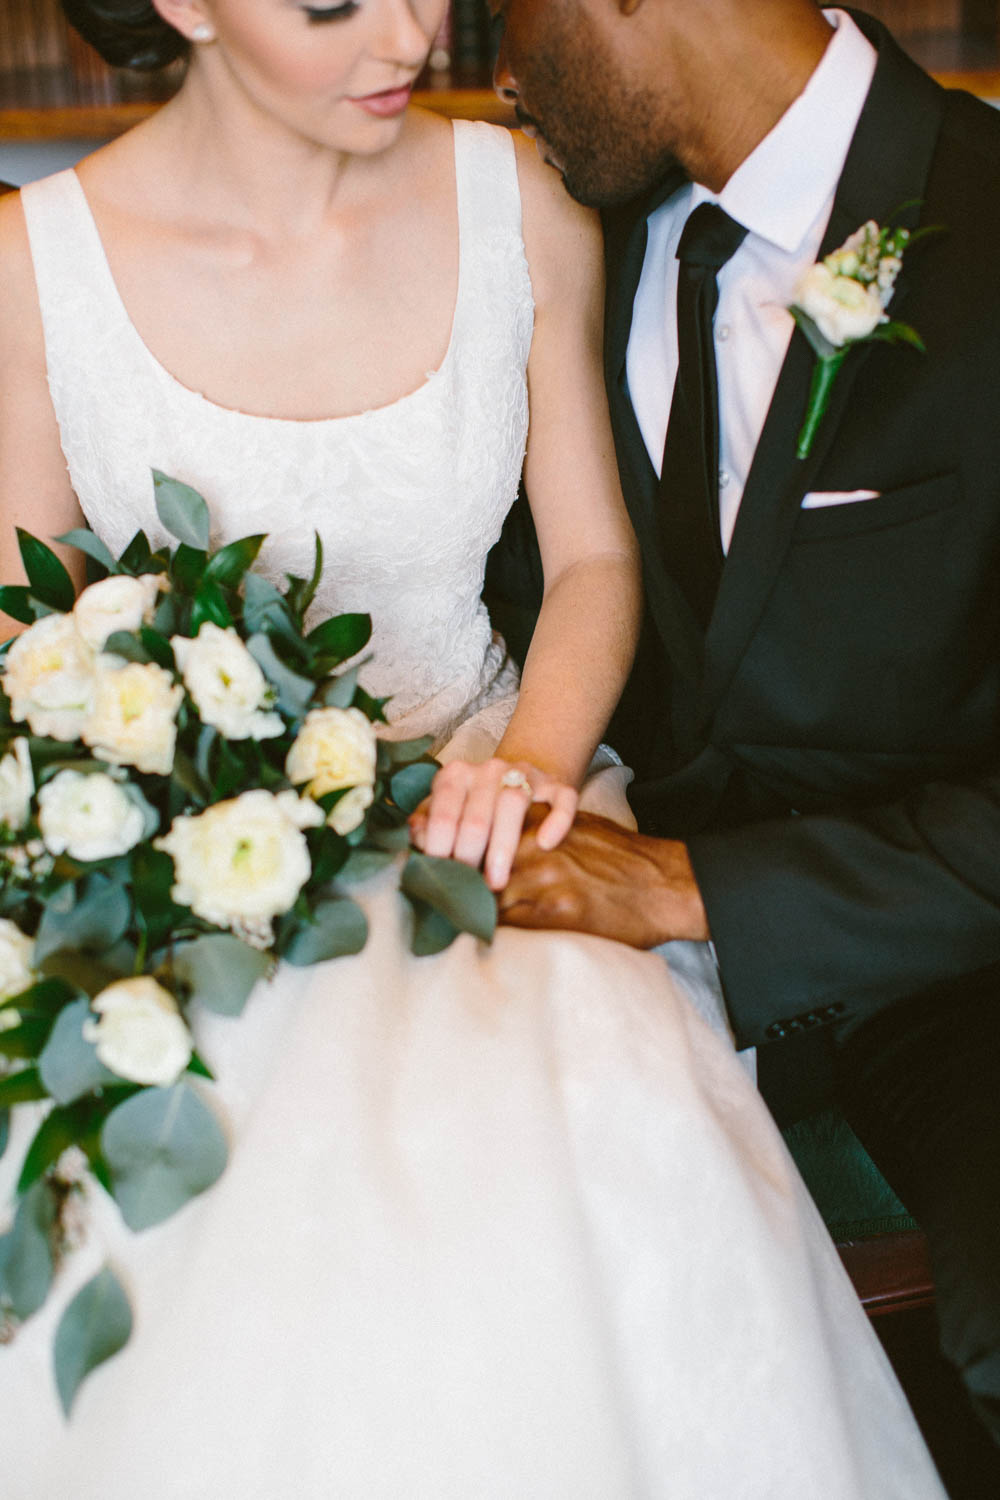 close up of bride and groom in black and white holding hands and white rose bouquet